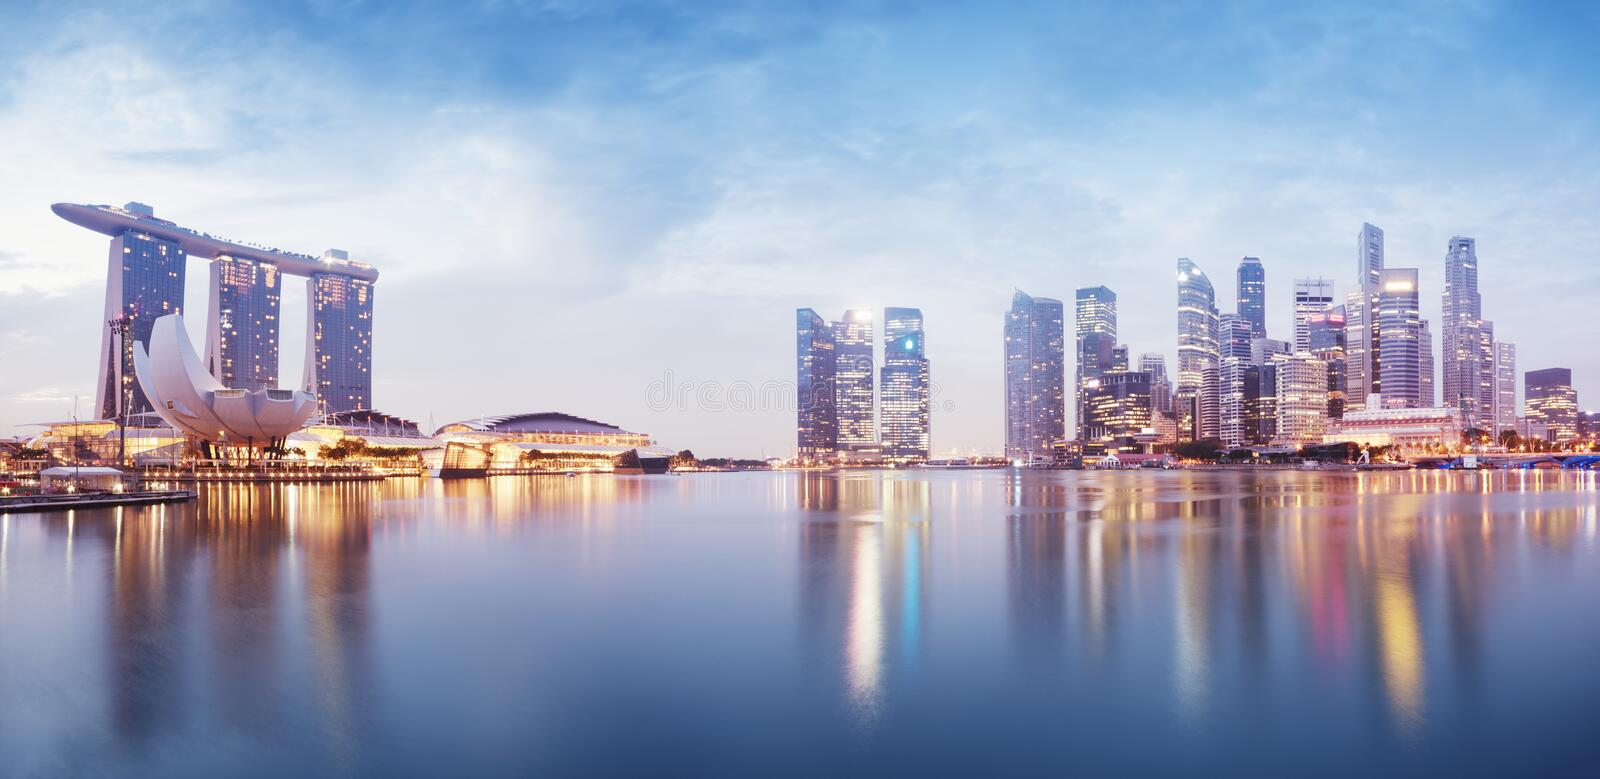 Download Singapore Skyline stock image. Image of contemporary - 38500675